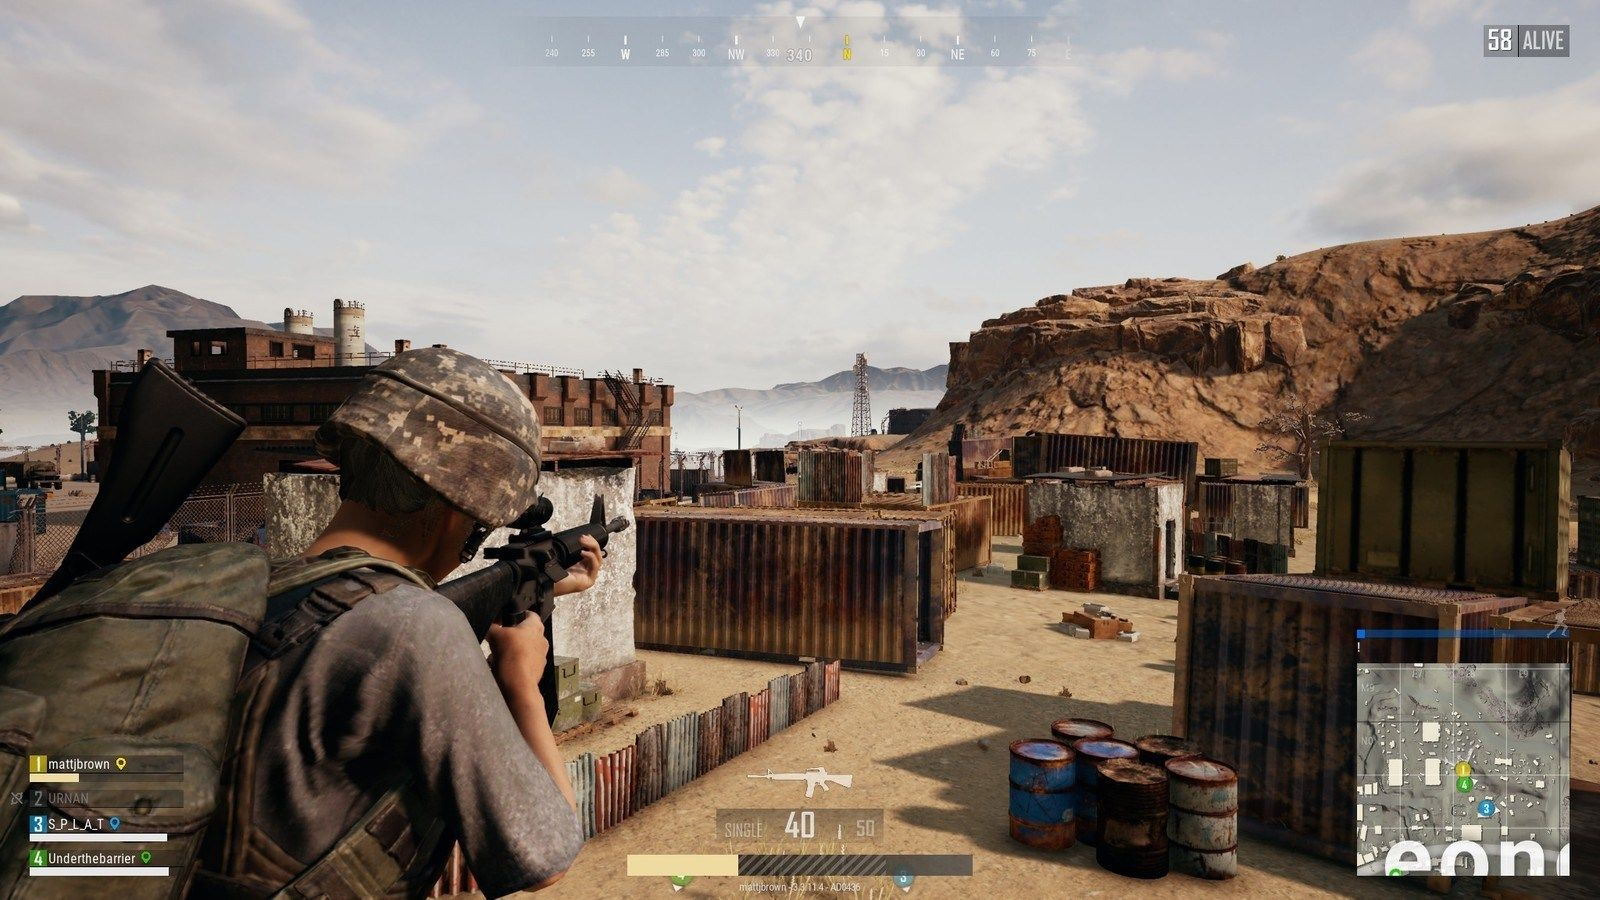 You can now download pubg on pc/laptop for free and it is